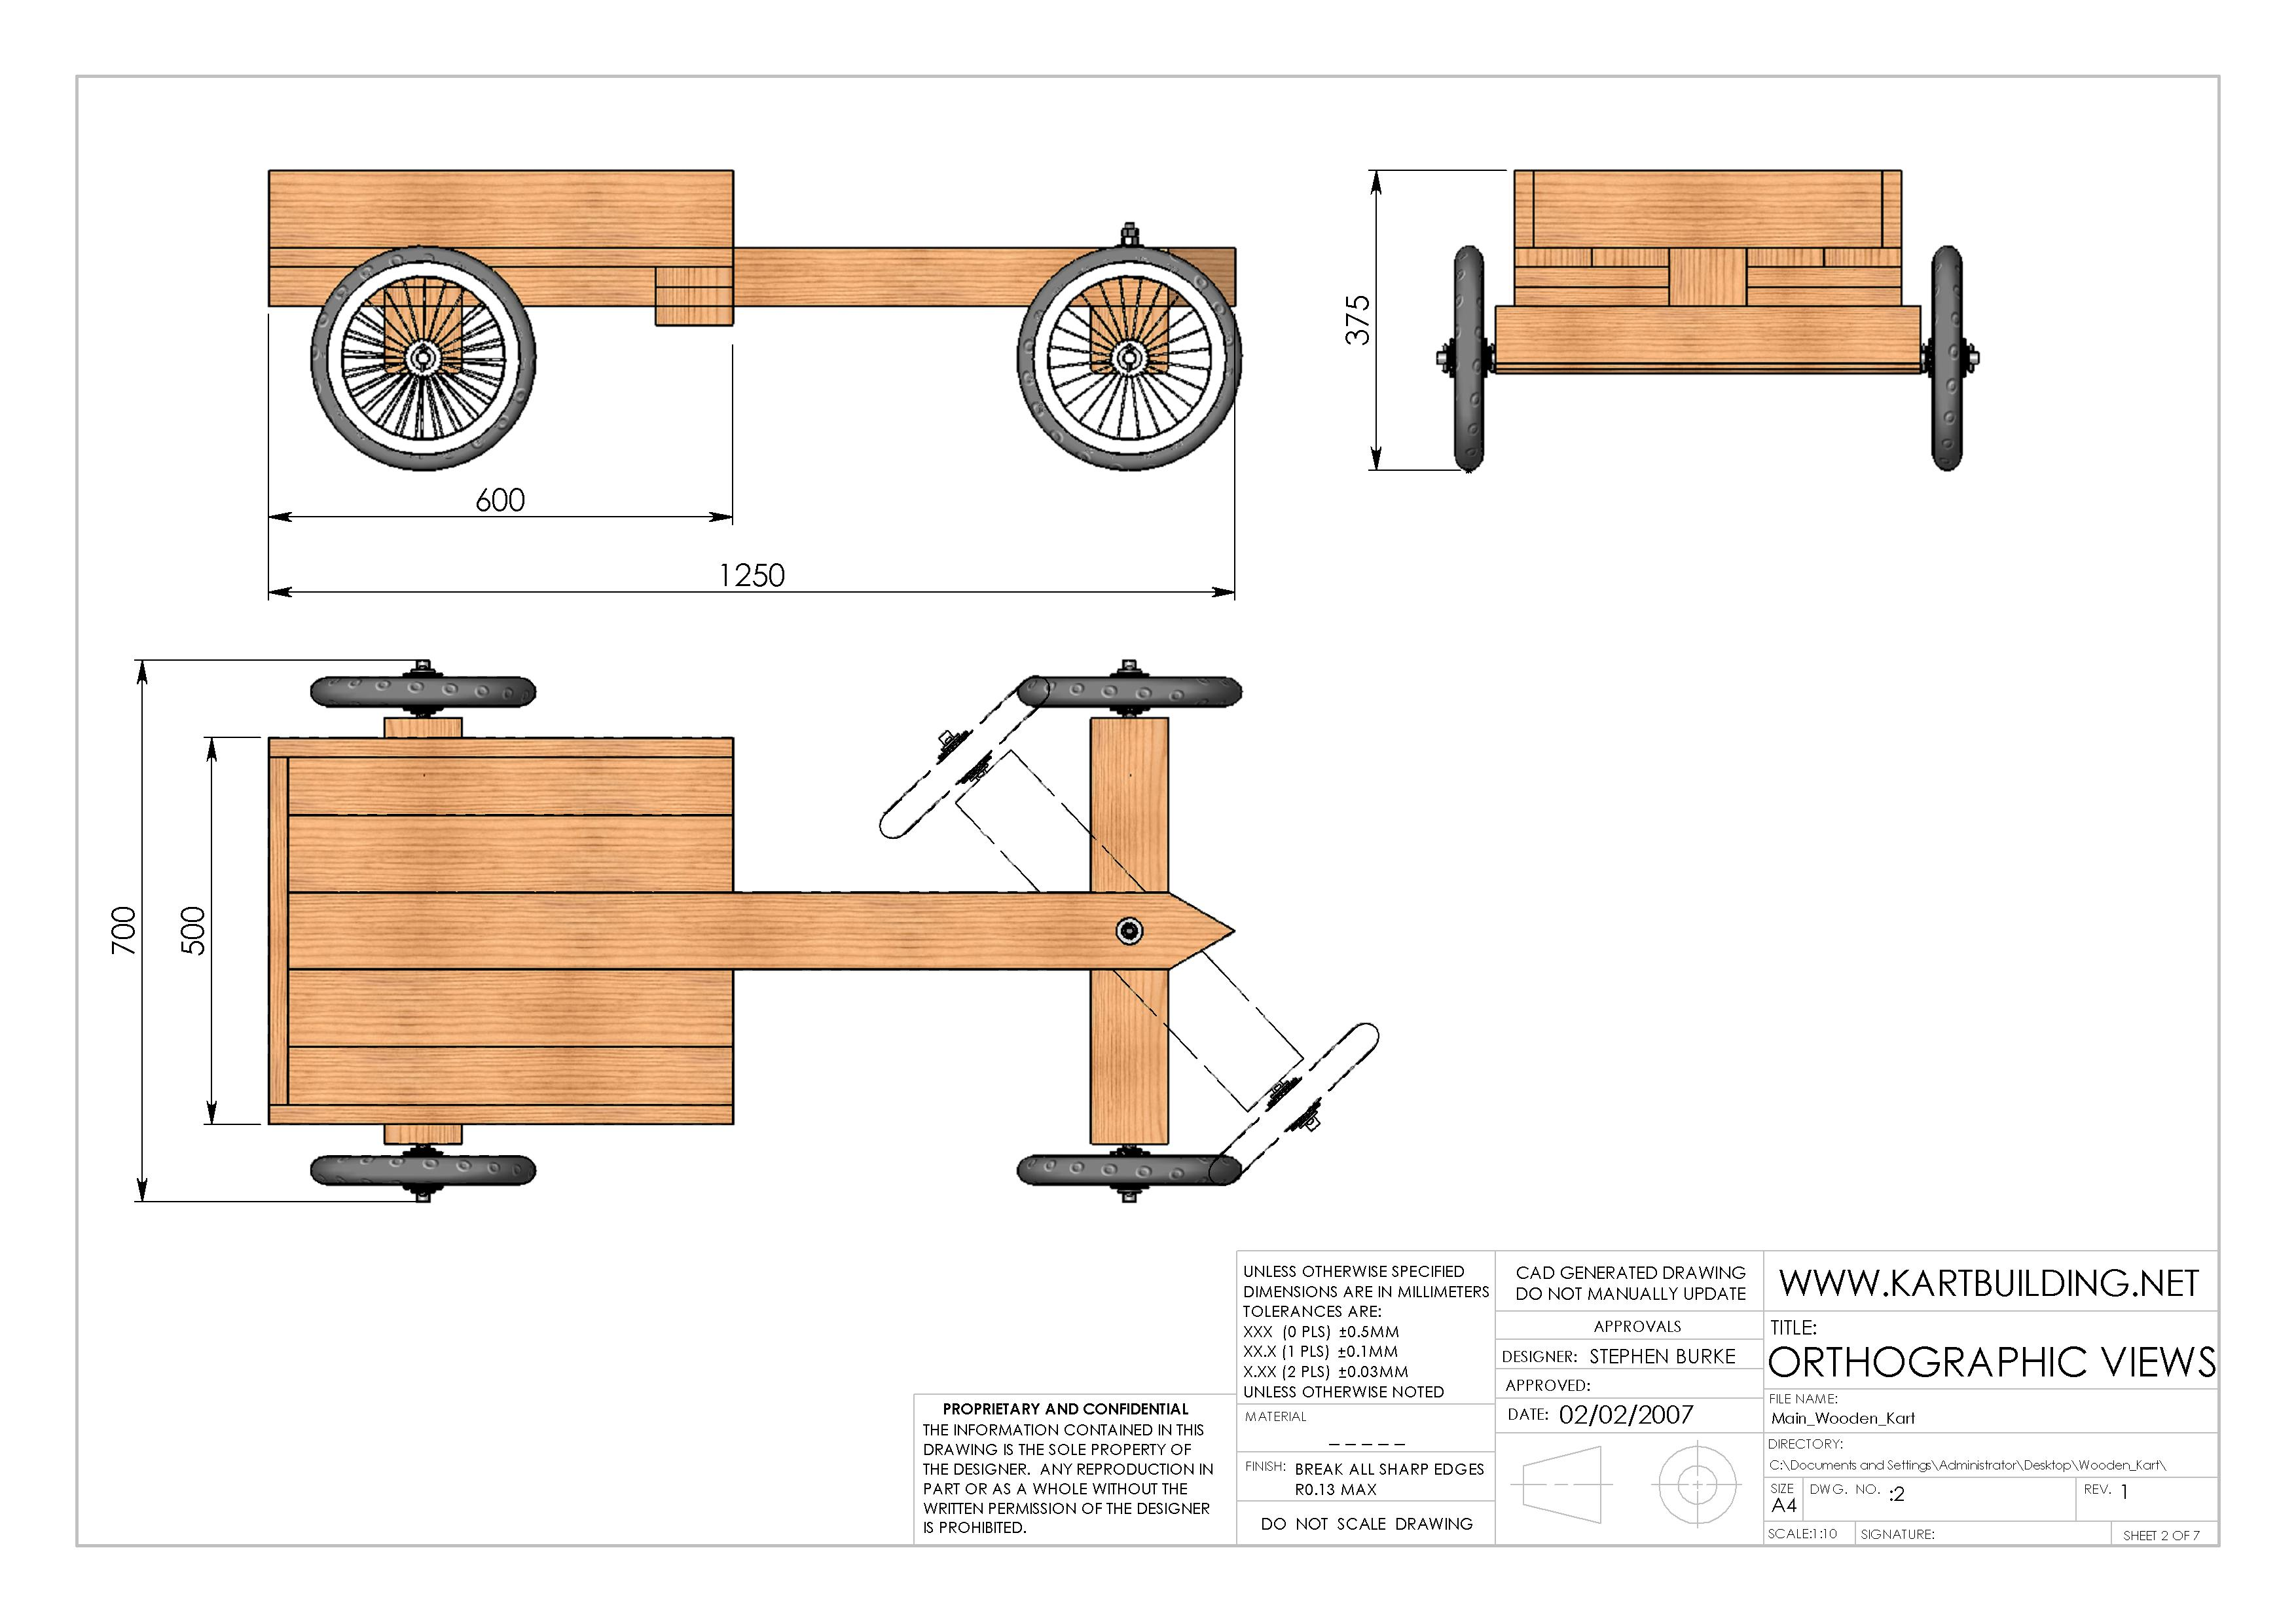 Wooden Soap Box Racer Plans | jasshoinacblog